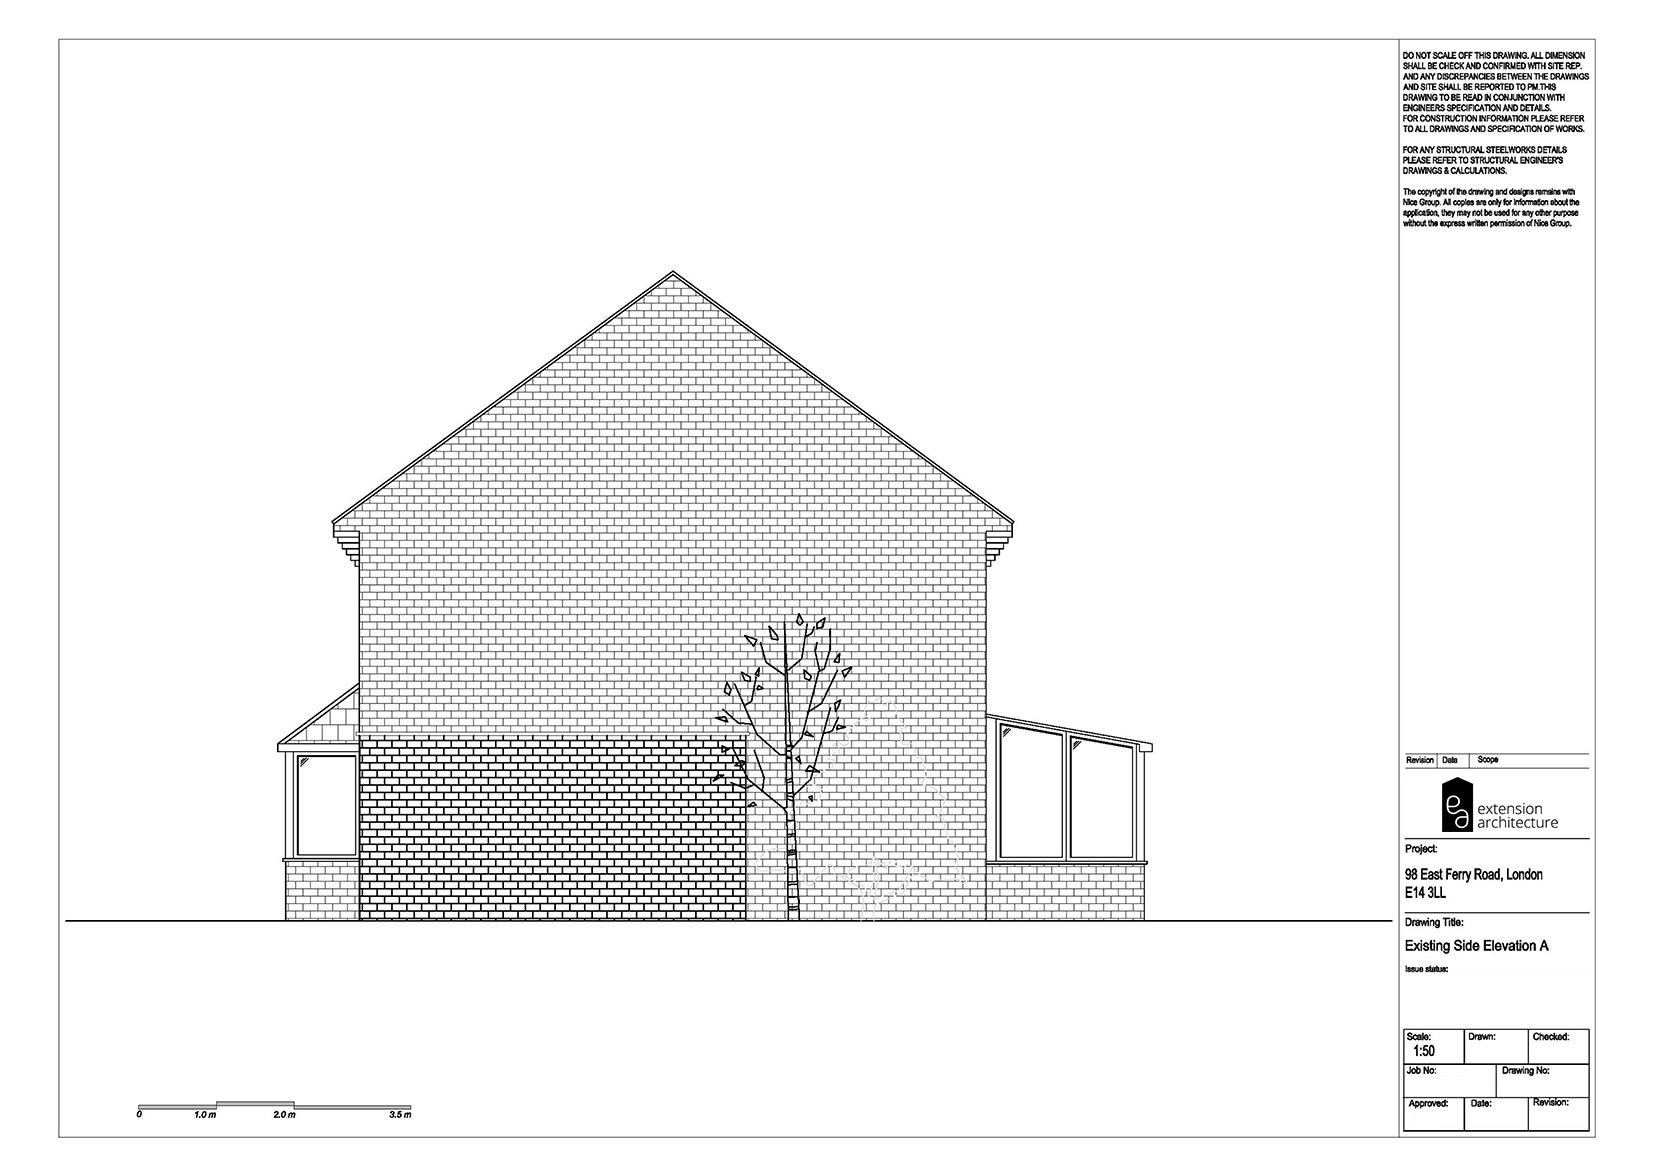 RESIDENTIAL 98 EFR existing-loft conversion...page 07